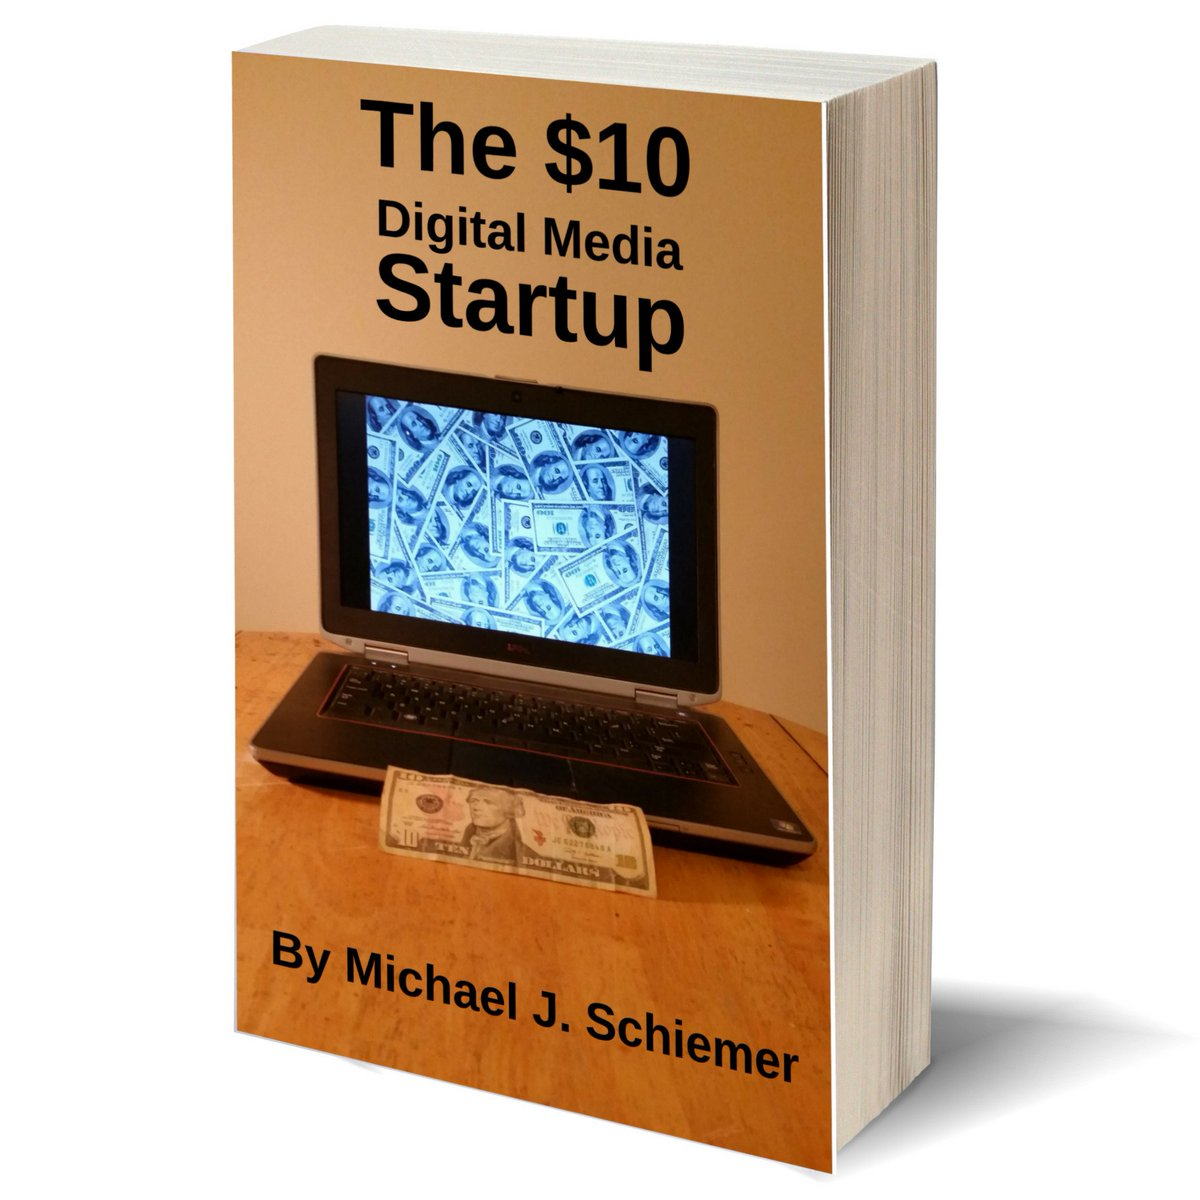 The $10 Digital Media Startup  http://www. myfrugalbusiness.com/2015/07/10-dol lar-digital-media-startup.html &nbsp; …  &lt;--- Read  #Entrepreneur #eBook #Publishing #ROI #SMB #SEO #CX<br>http://pic.twitter.com/mm5t38tcwf